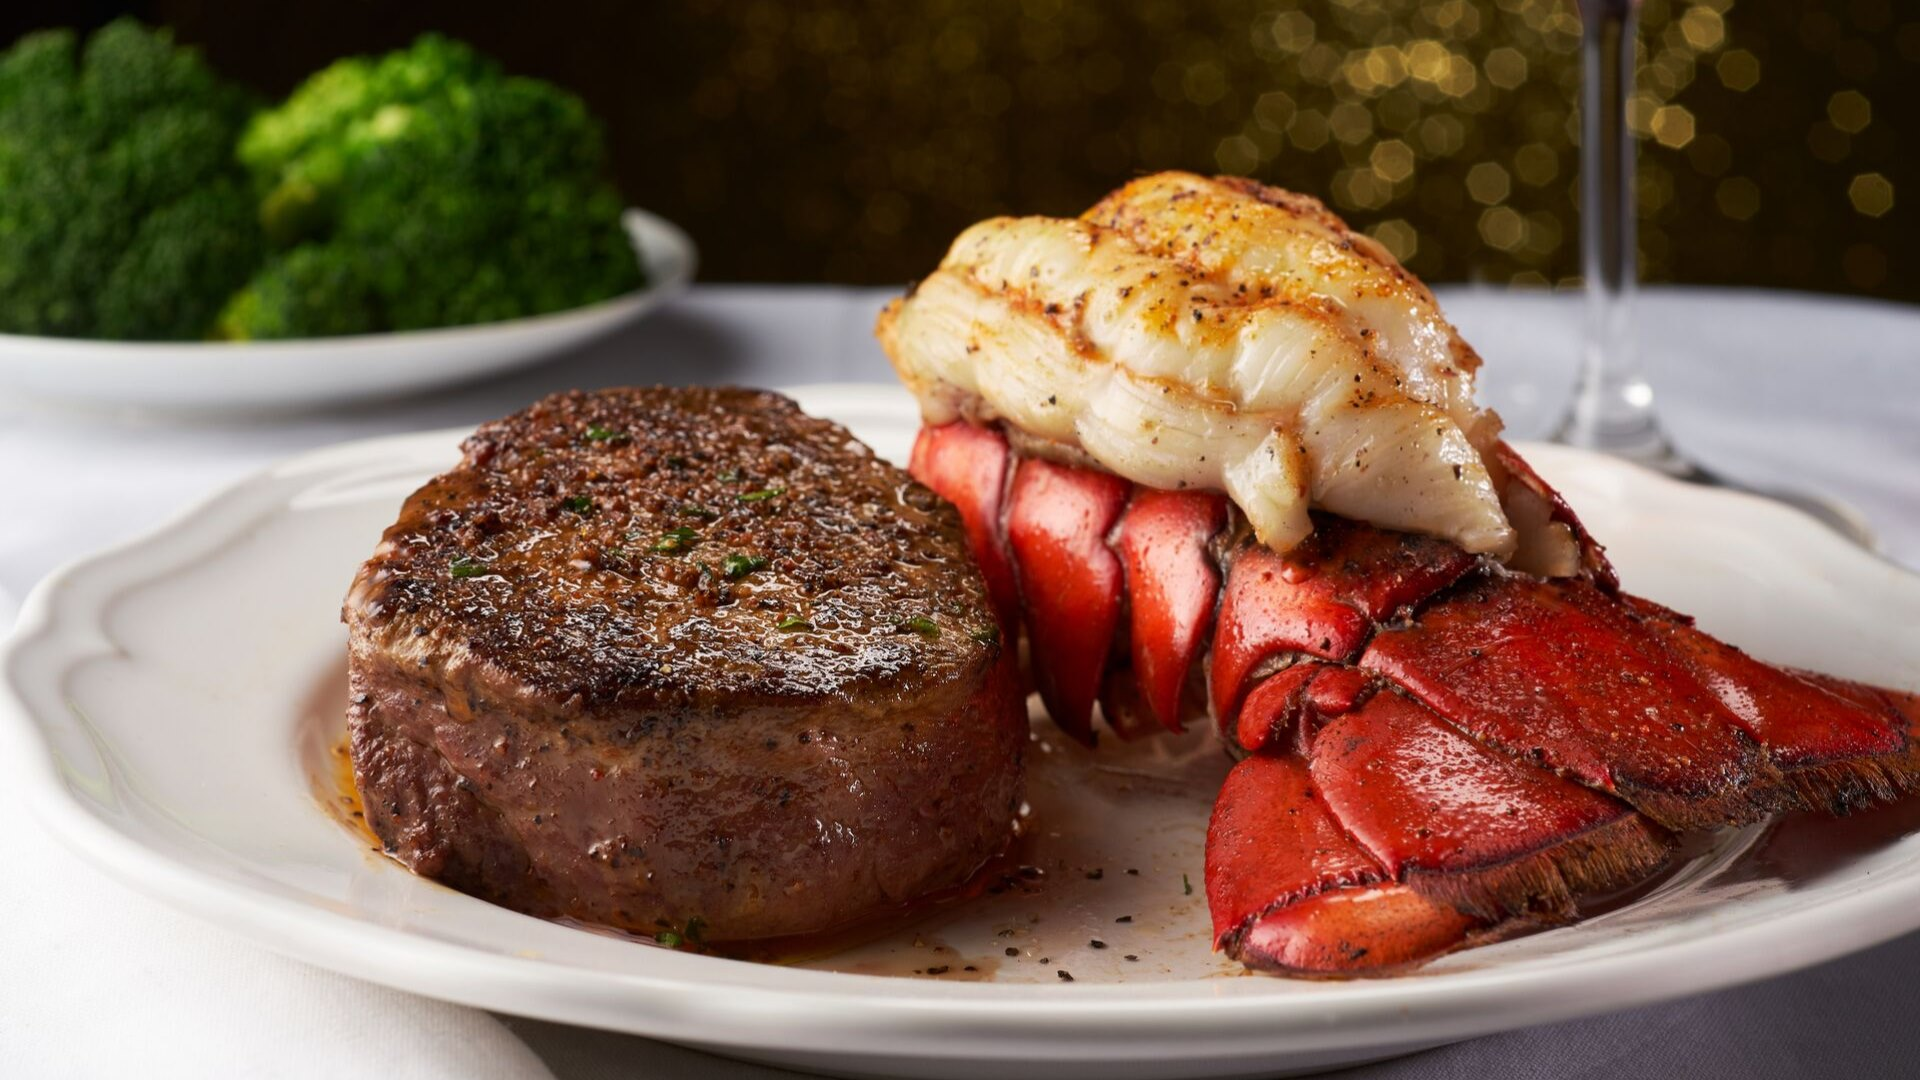 surf and turf: steak and lobster tail on a plate